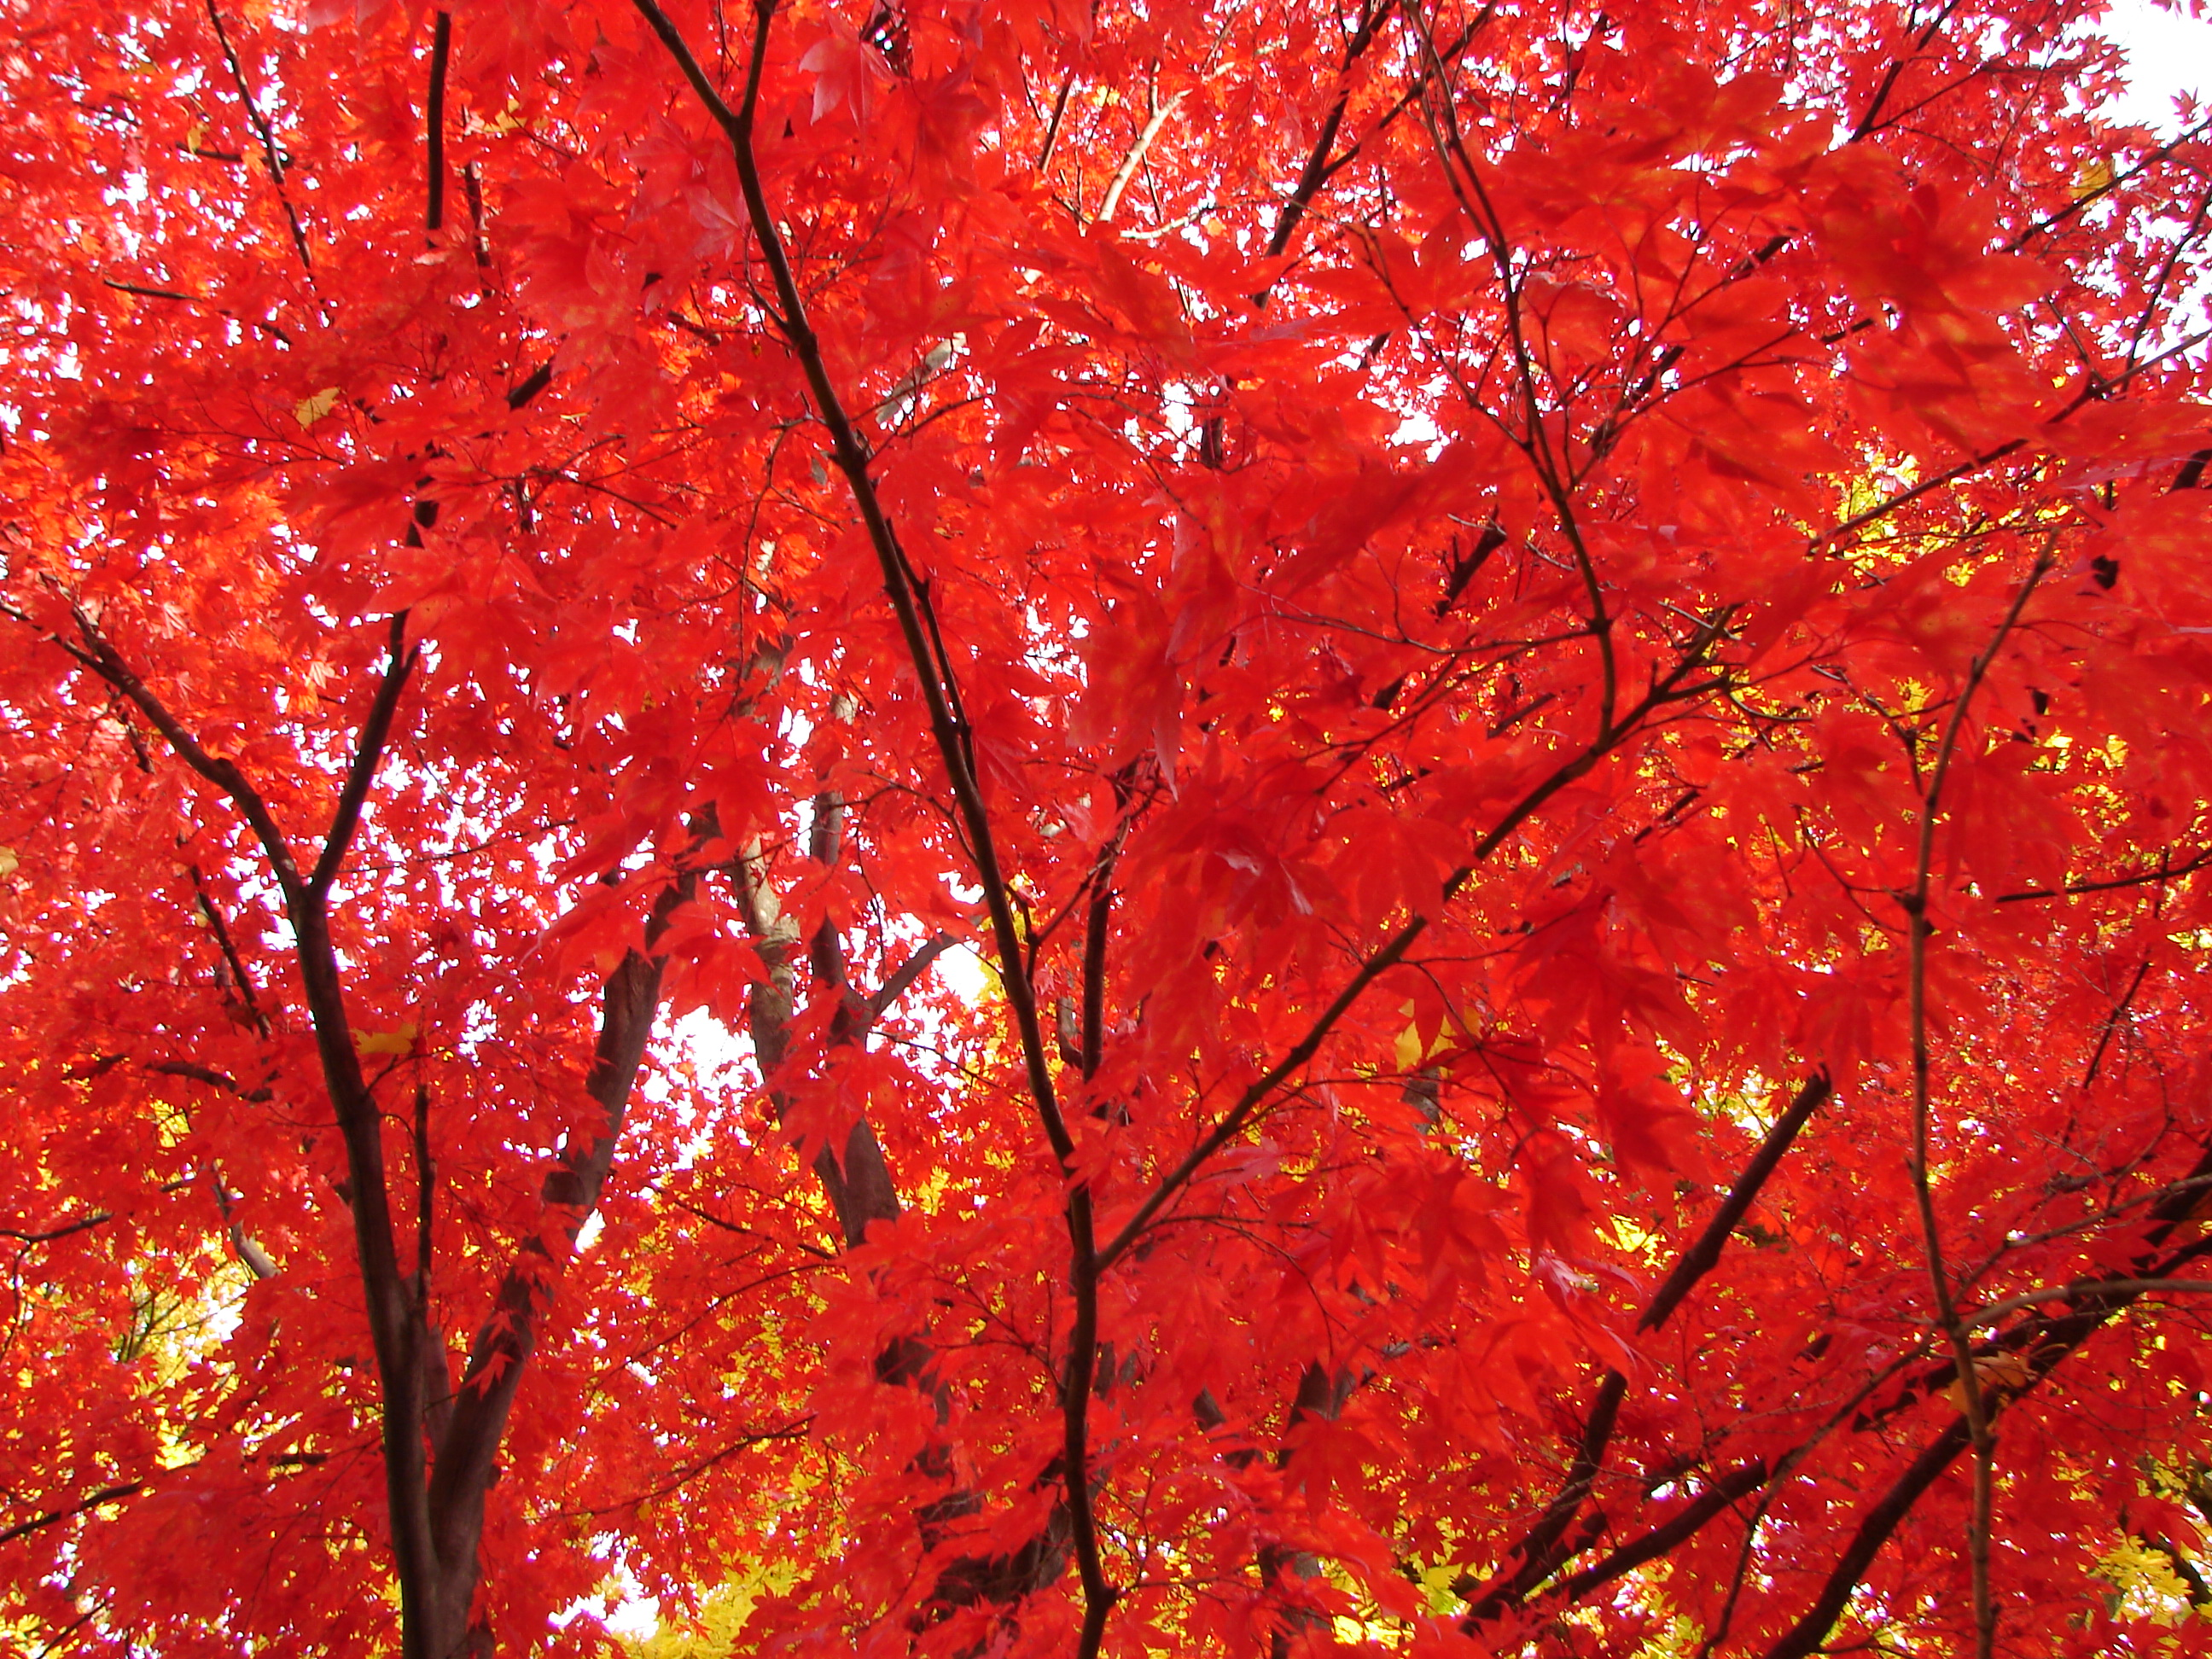 Vibrancy: Red Maple in the Fall